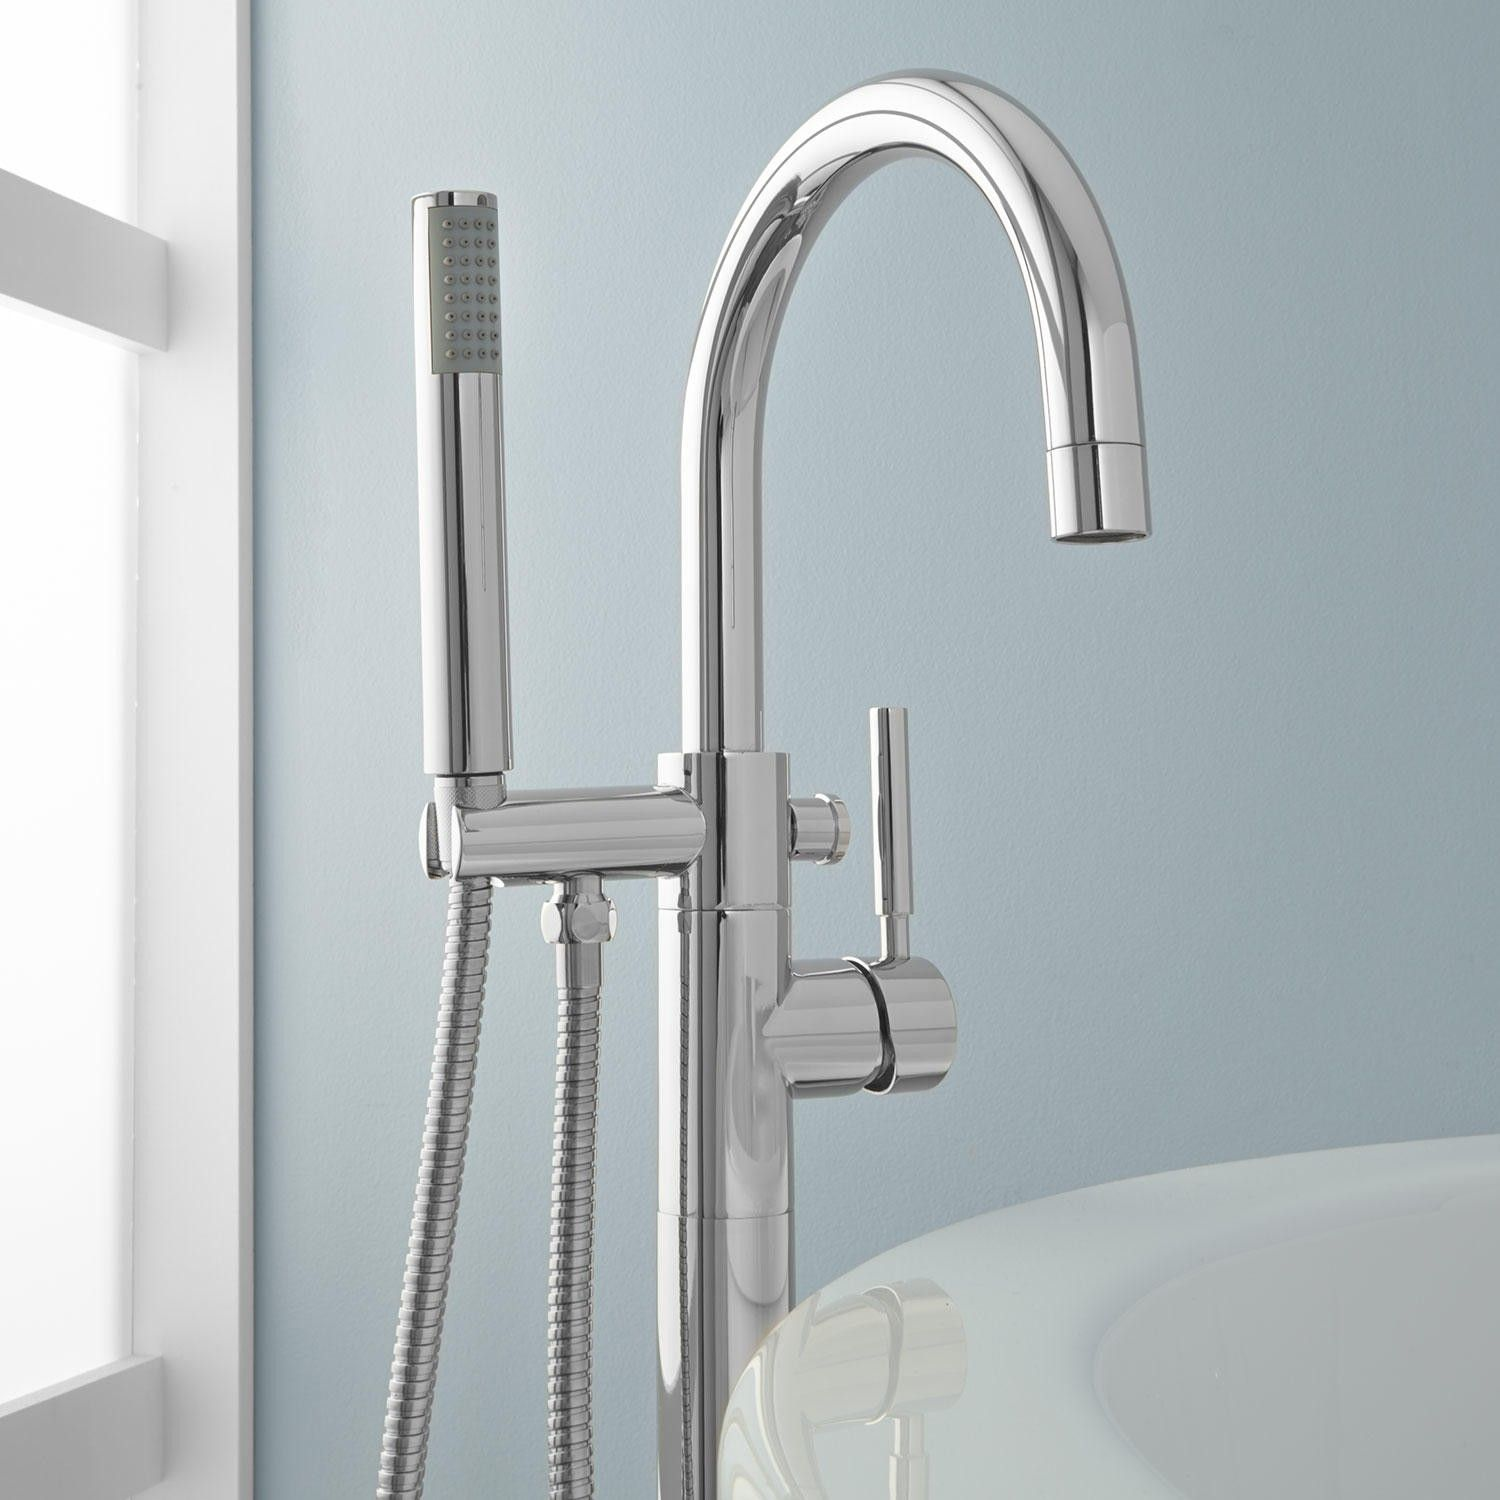 Simoni Freestanding Tub Faucet and Hand Shower Faucets Showers